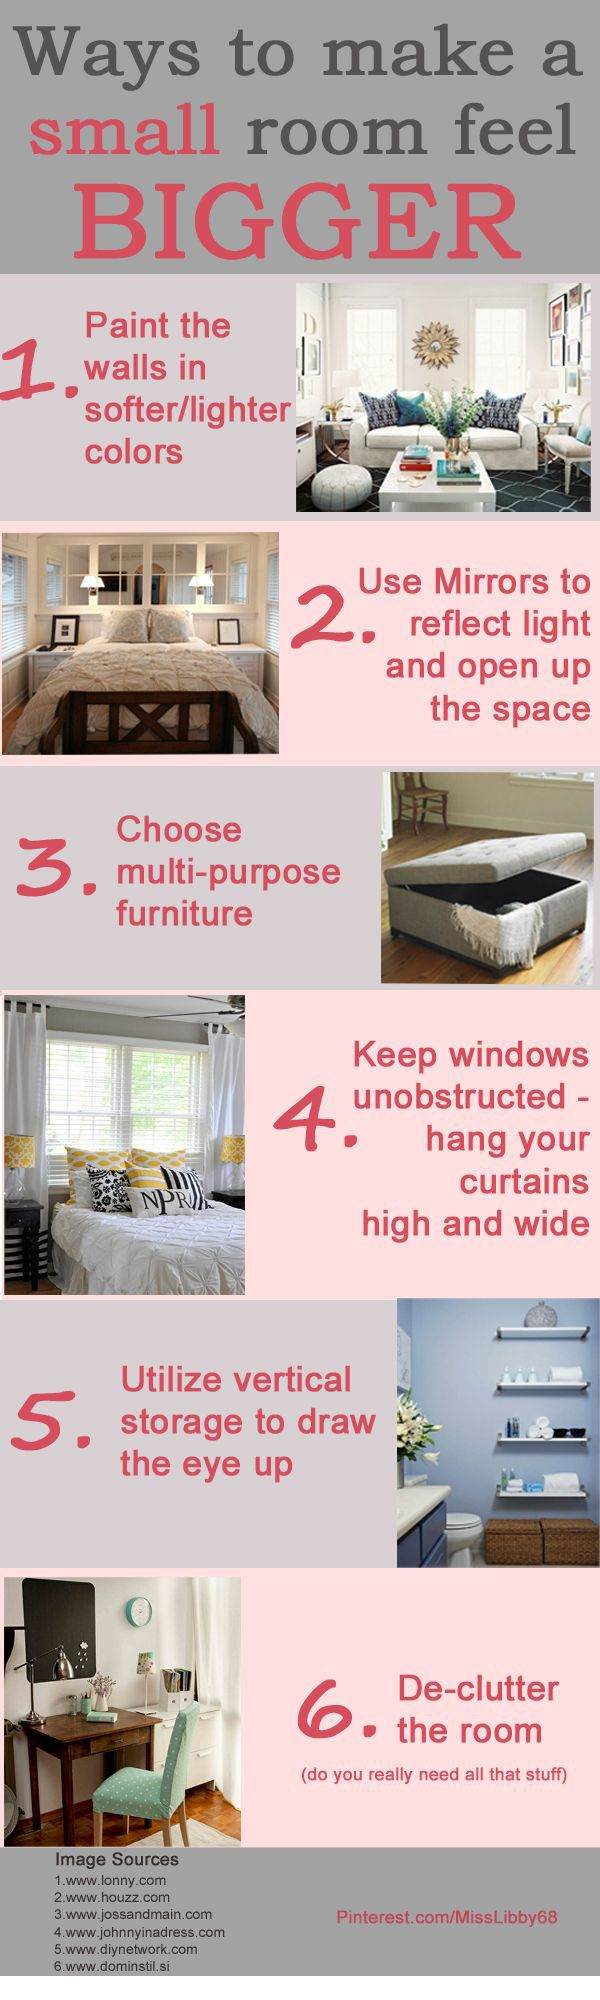 20 bedroom organization tips to make the most of a small space - Bedroom Colors For Small Rooms